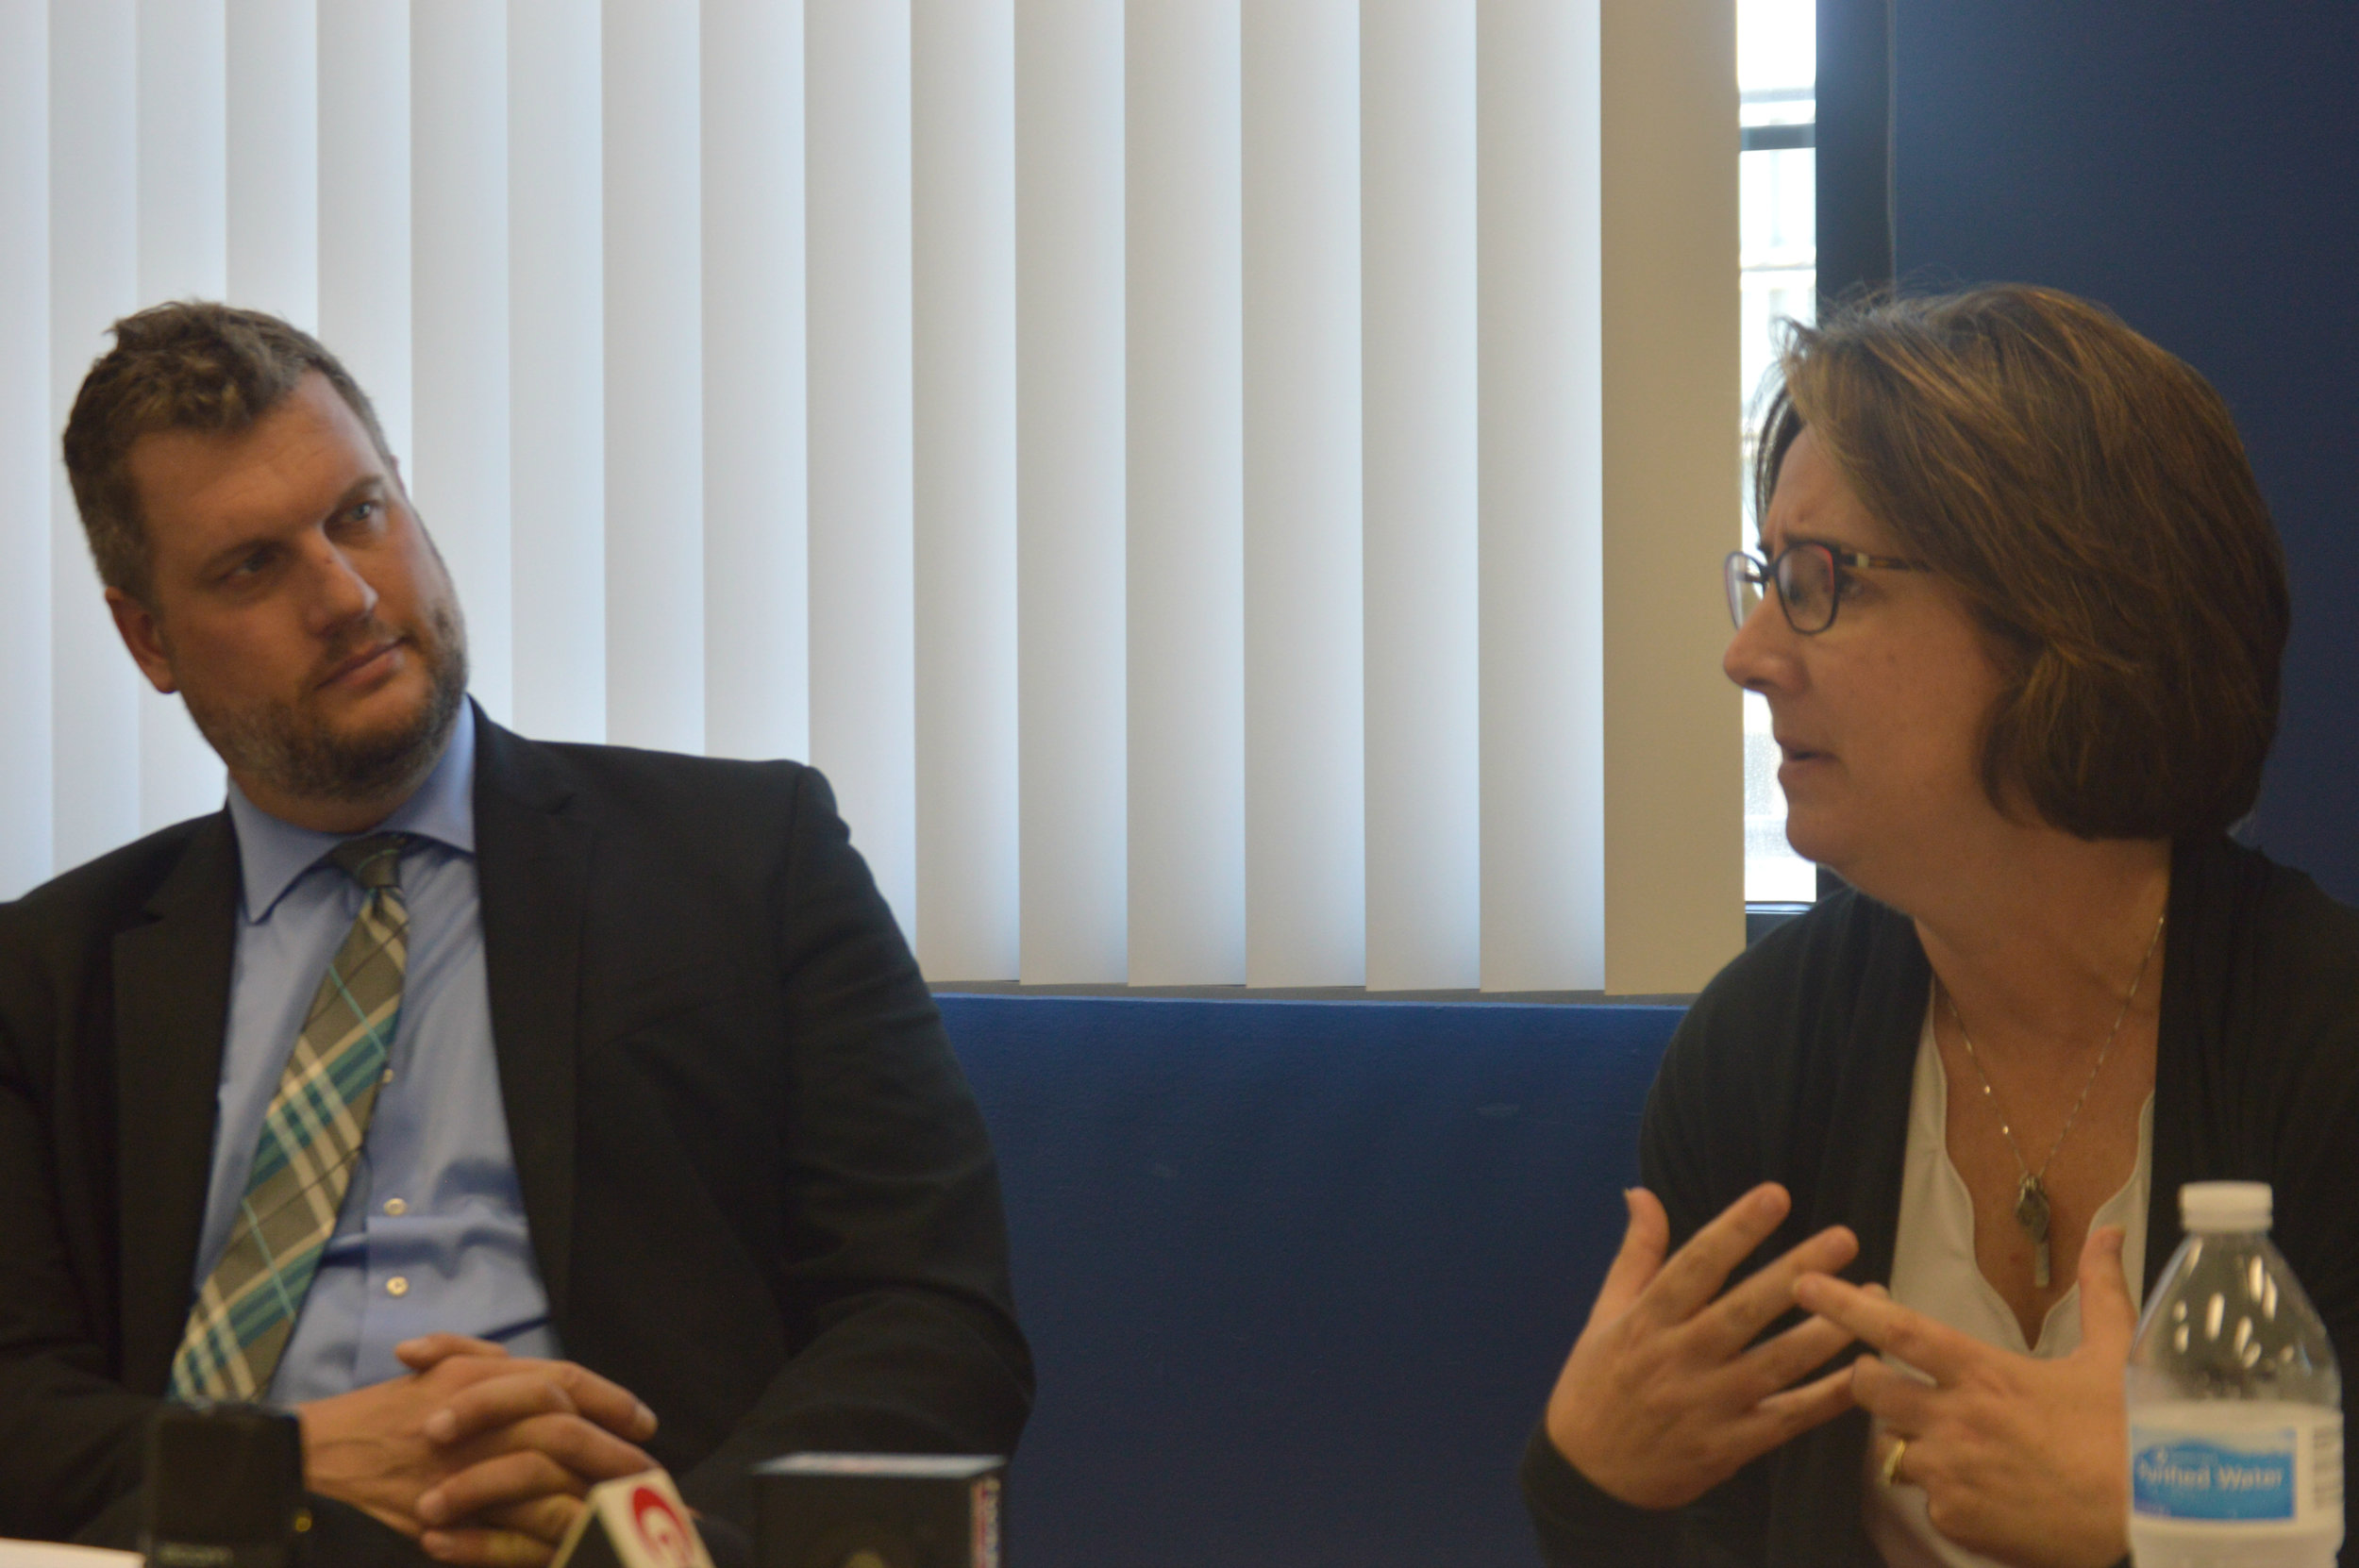 United Way of McLean County President and CEO David Taylor, left, and project consultant Kathleen Lorenz discuss new fundraising models during a press conference Wednesday at the agency's Downtown Bloomington office. (Photo:Breanna Grow/AdaptBN)